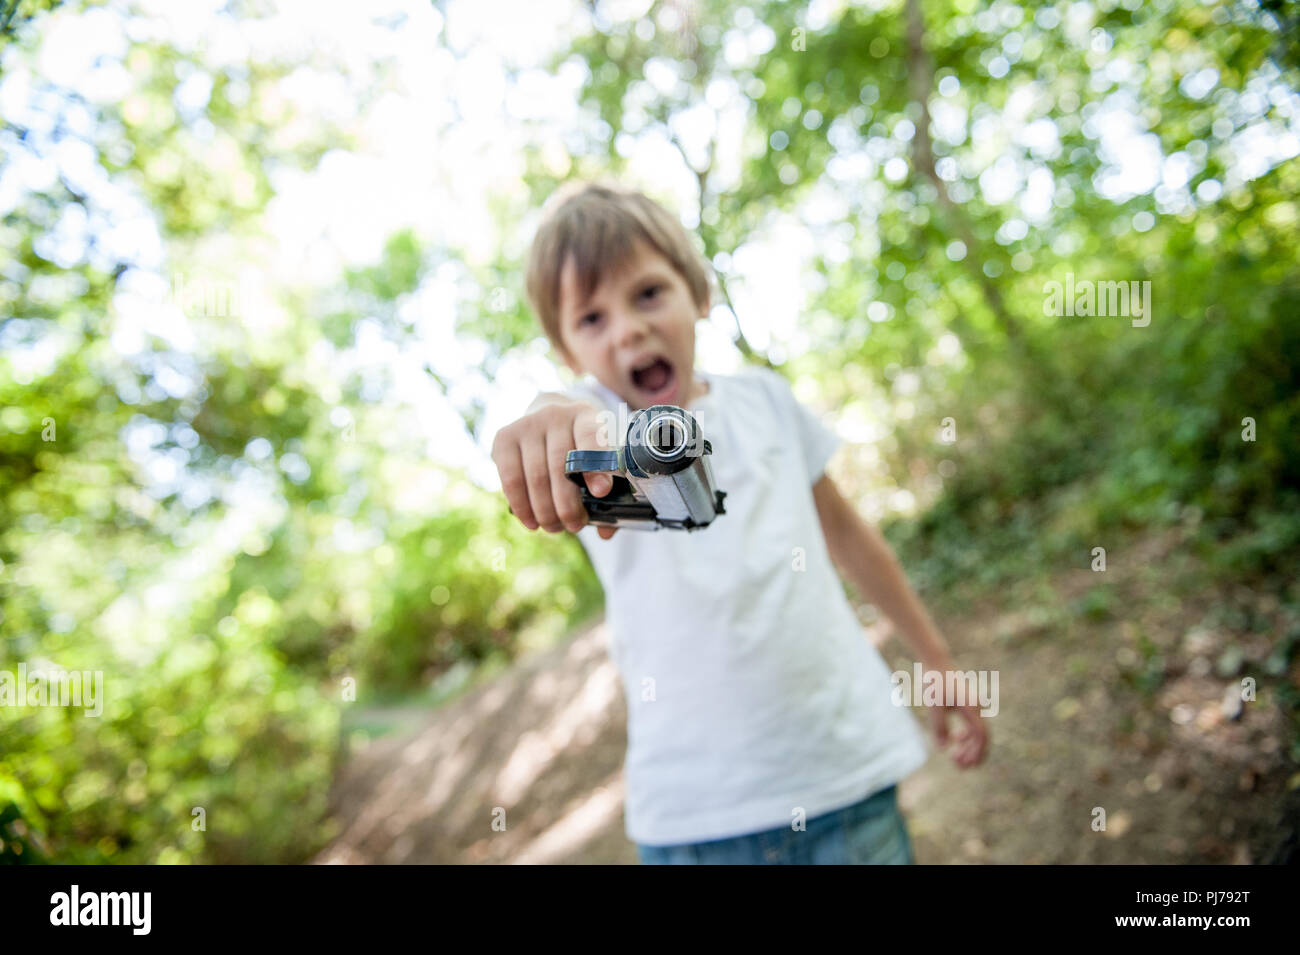 angry threatening little caucasian kid aiming gun at camera shouting outdoors - Stock Image